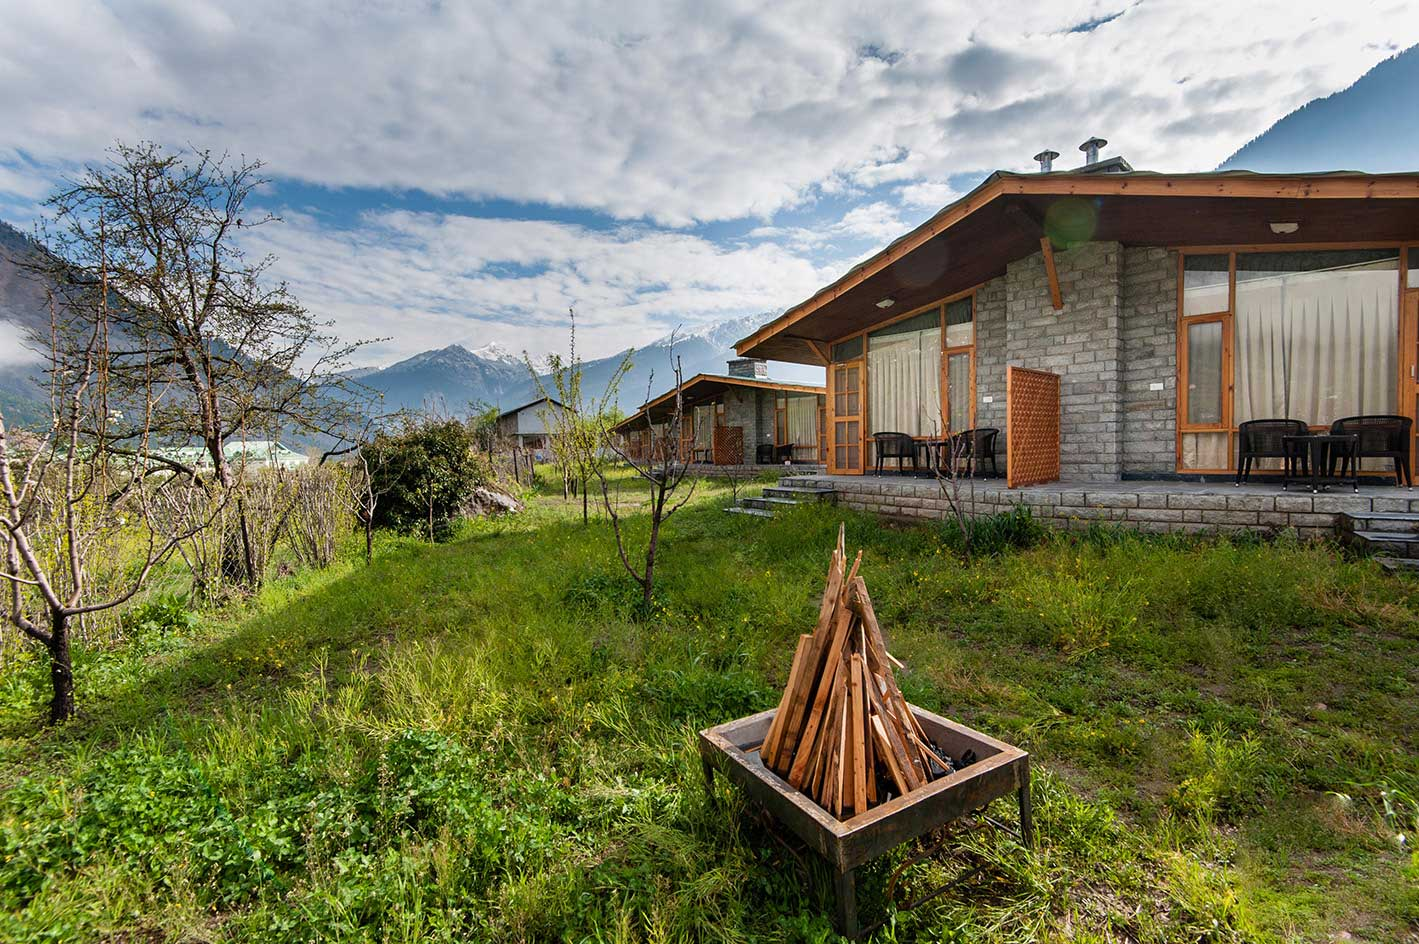 8 Hipster Mountain Retreats In India For Those Who Look Beyond Hotels